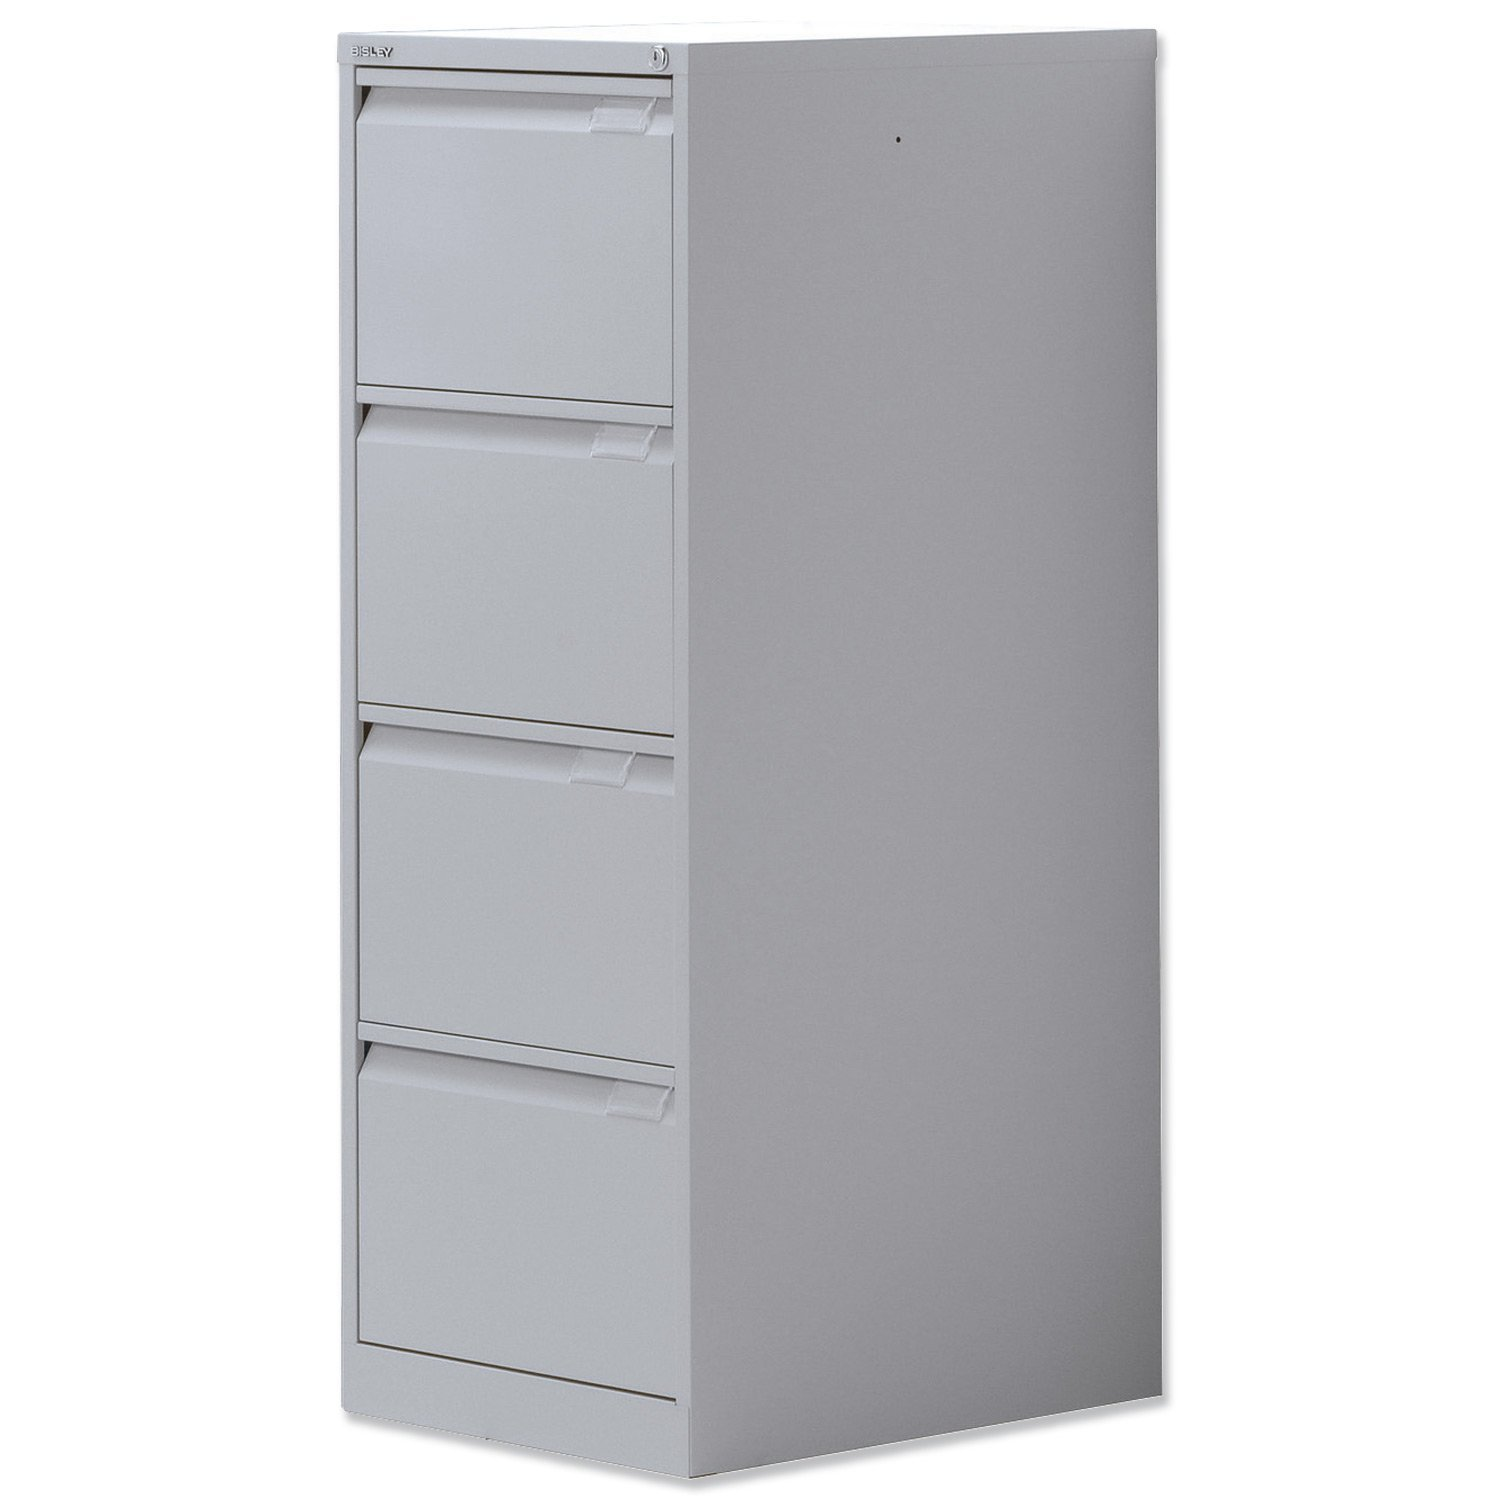 Bisley File Cabinet | 2 Drawer White File Cabinet | Bisley File Cabinets